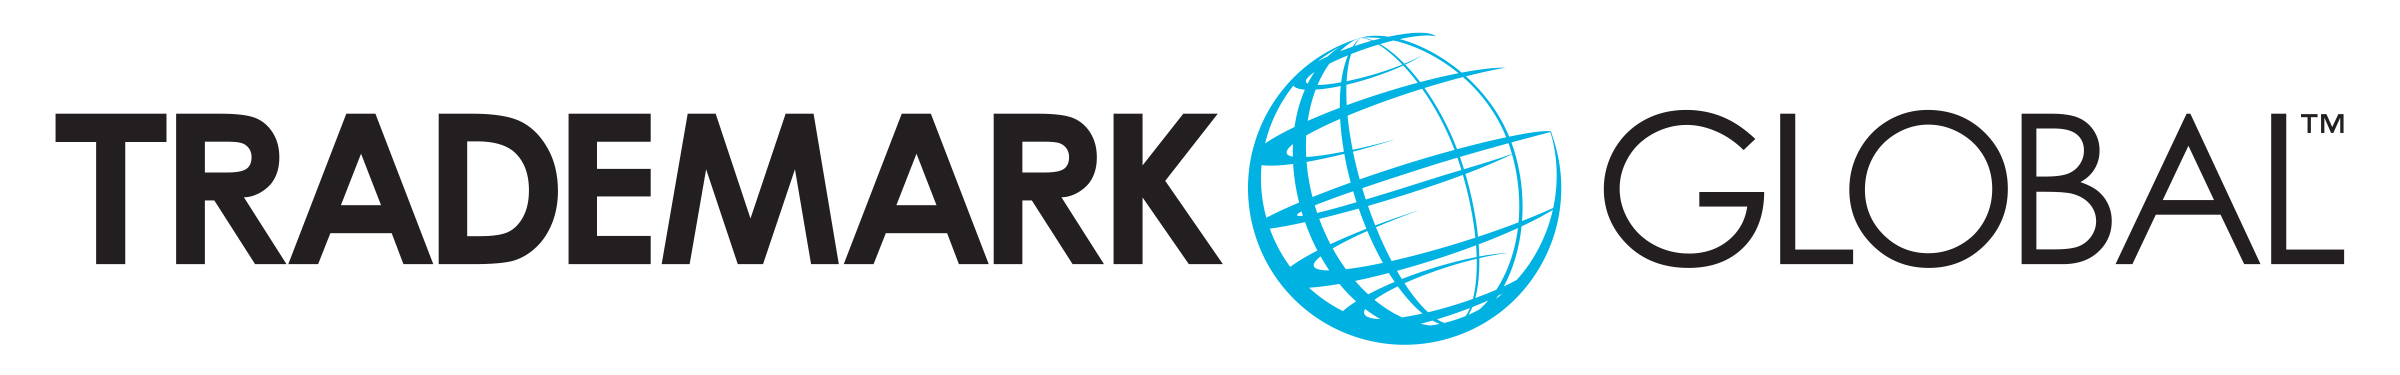 Trademark Global logo.jpg